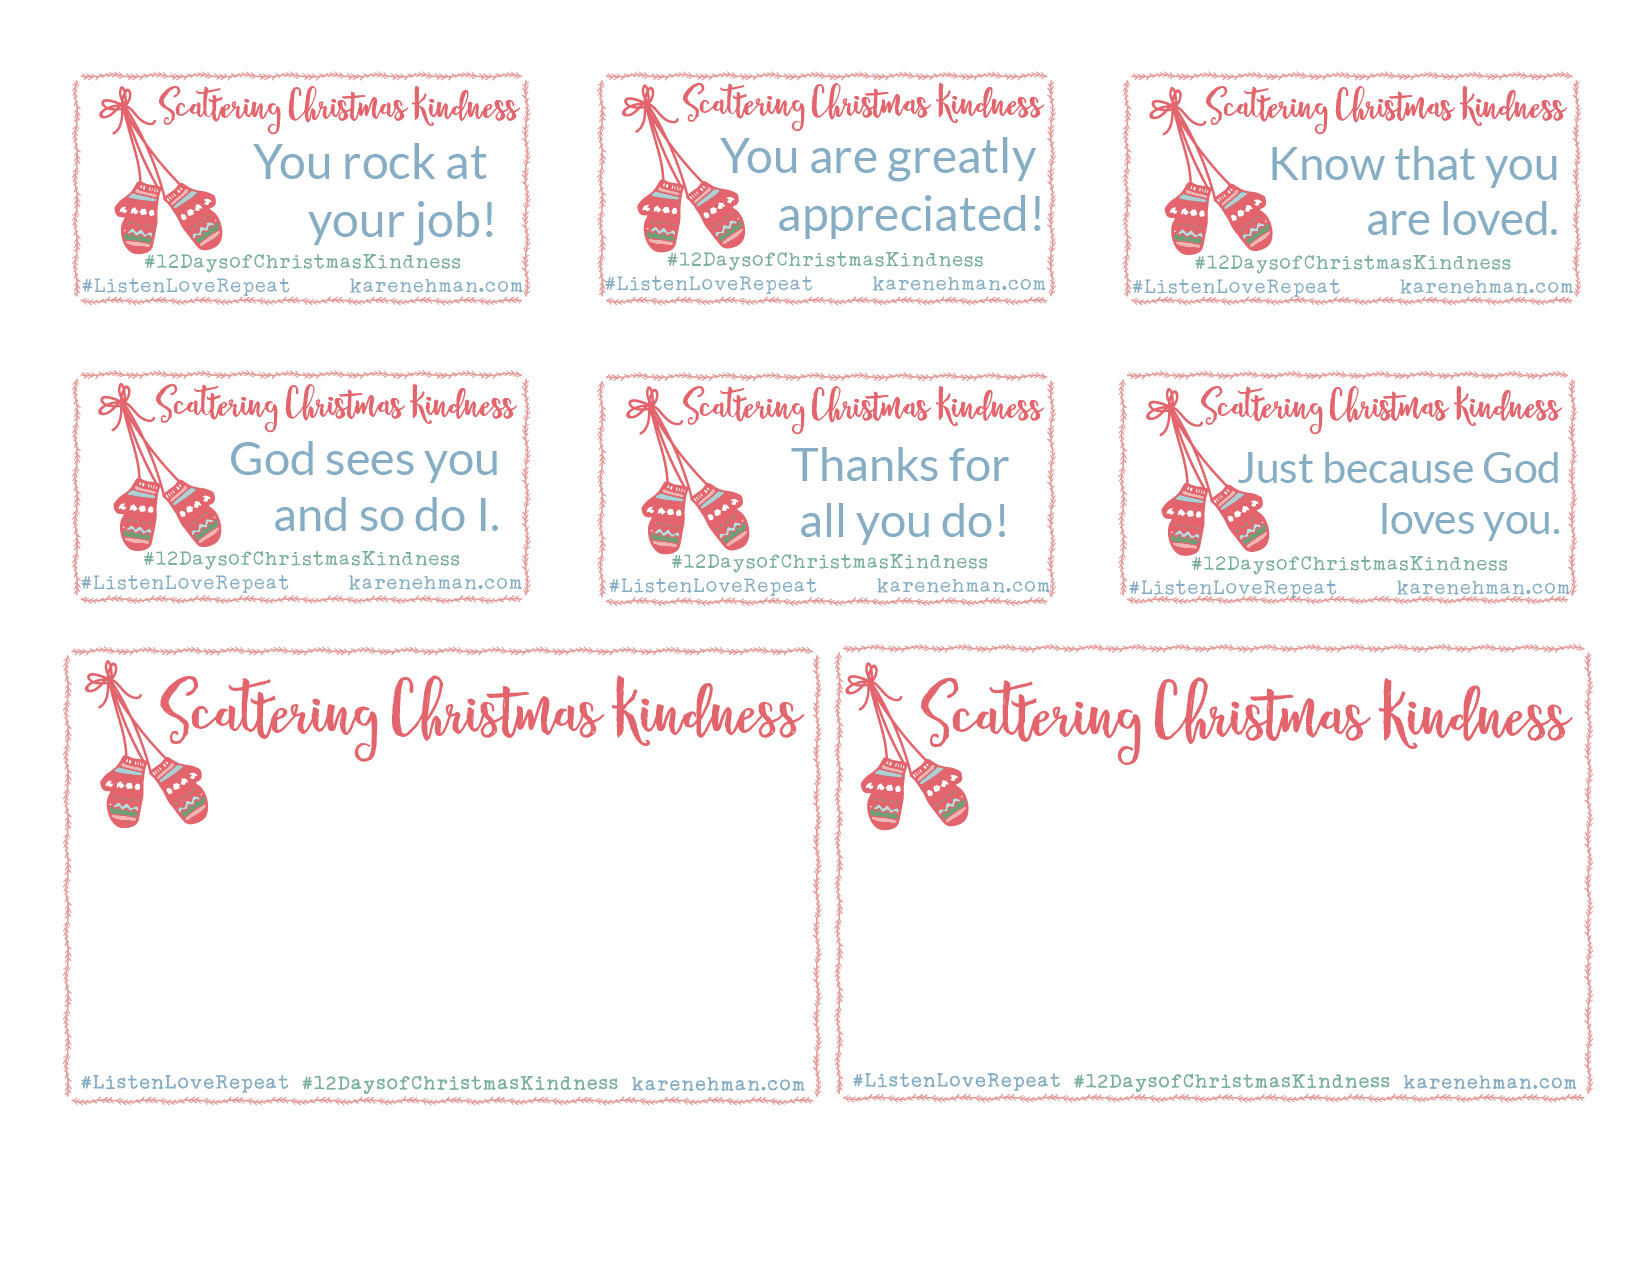 Click Here To Download The Printable Christmas Kindness Cards